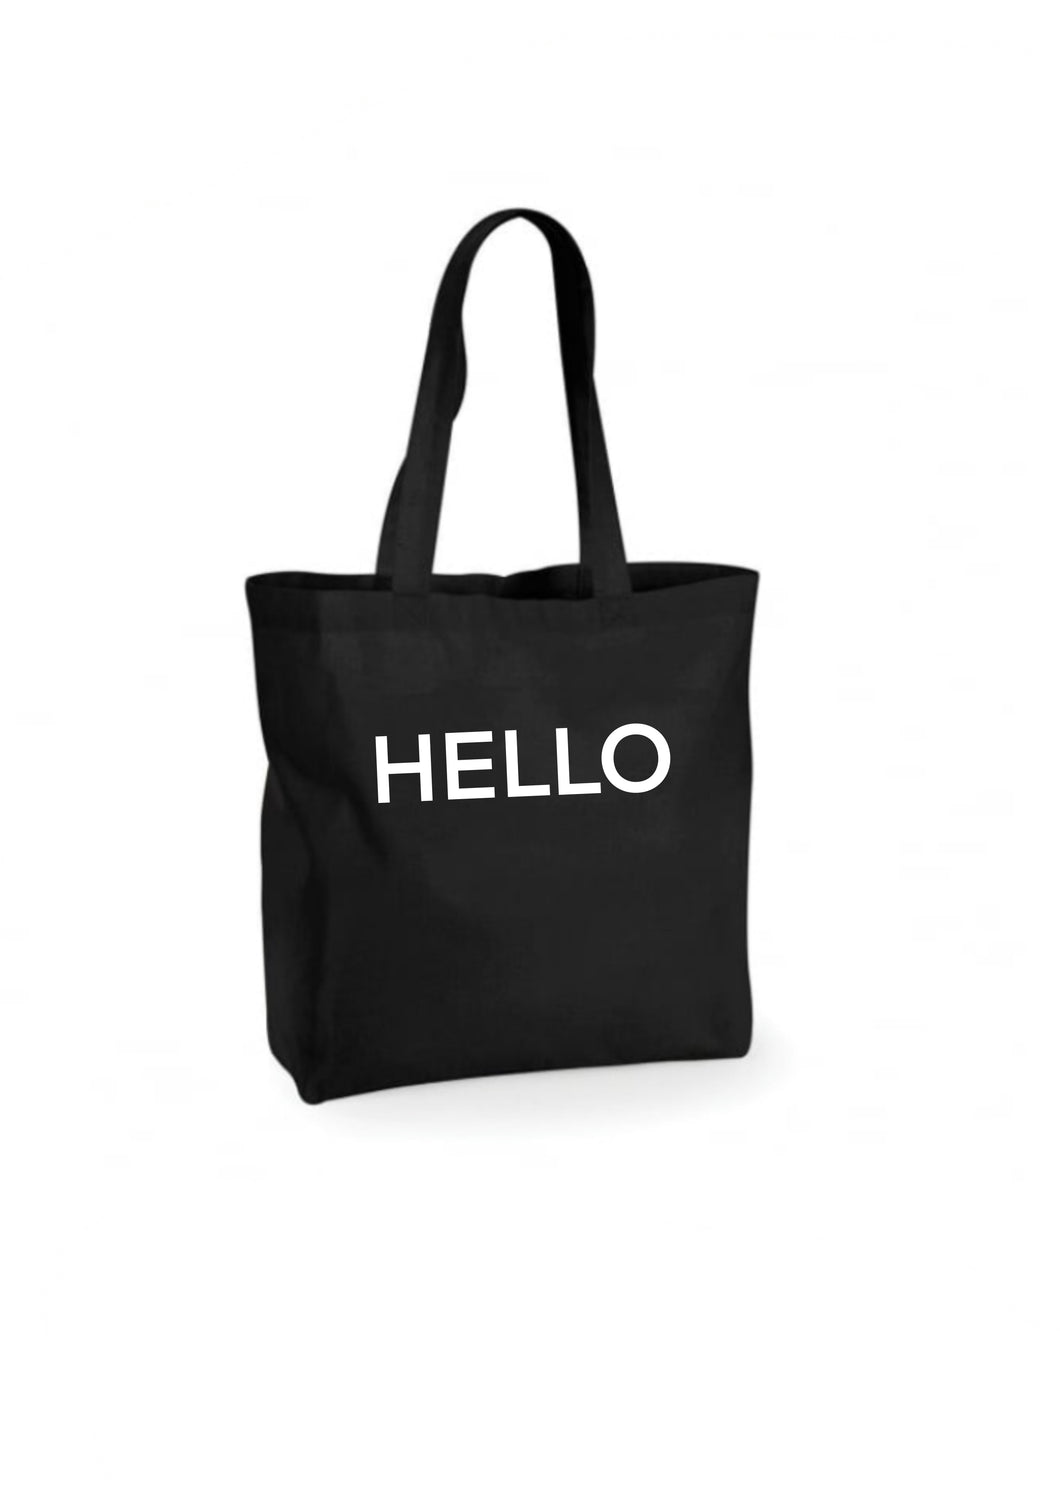 Hello Tote bag - Large